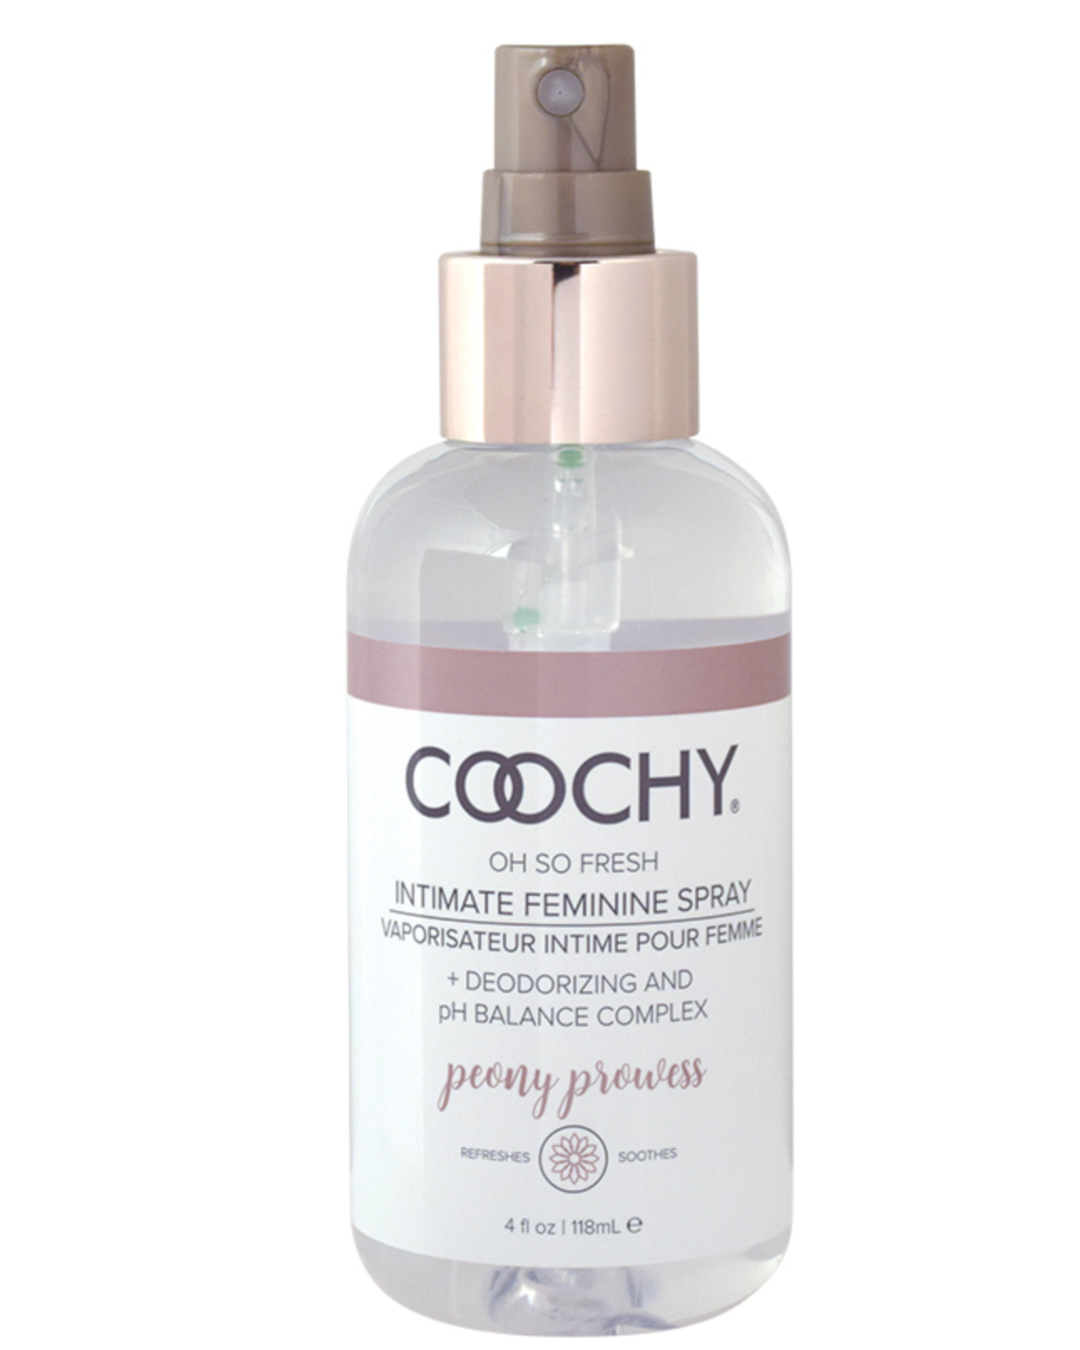 Coochy Intimate Feminine Spray - Peony Prowess 4 oz front of bottle